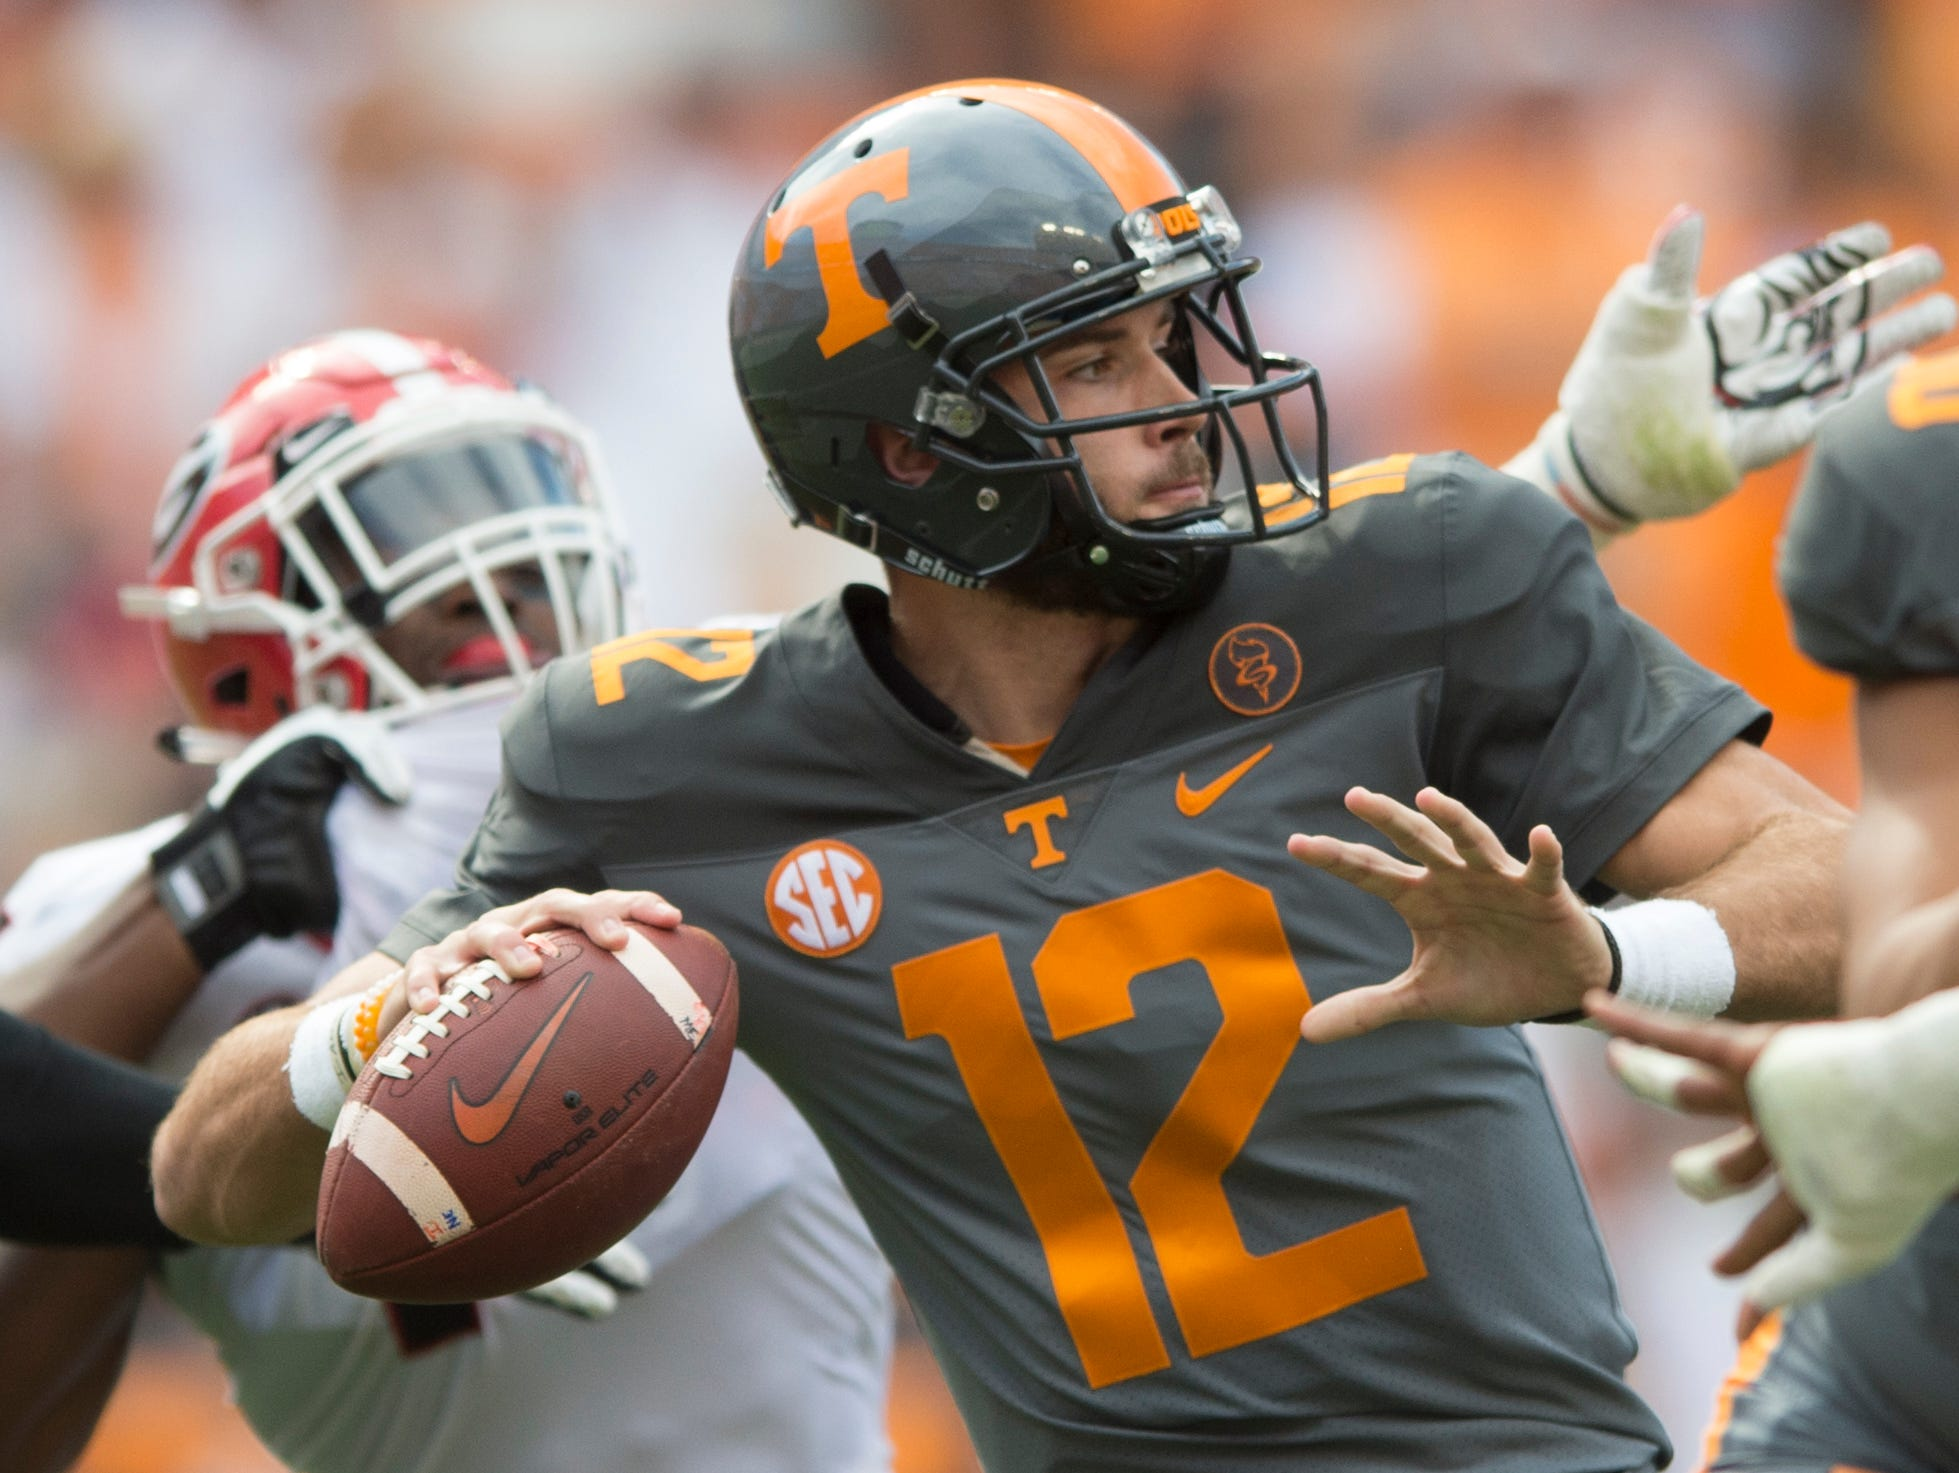 Tennessee quarterback Quinten Dormady (12) lines up a pass during the Tennessee Volunteers vs. Georgia Bulldogs game at Neyland Stadium in Knoxville, Tennessee on Saturday, September 30, 2017.